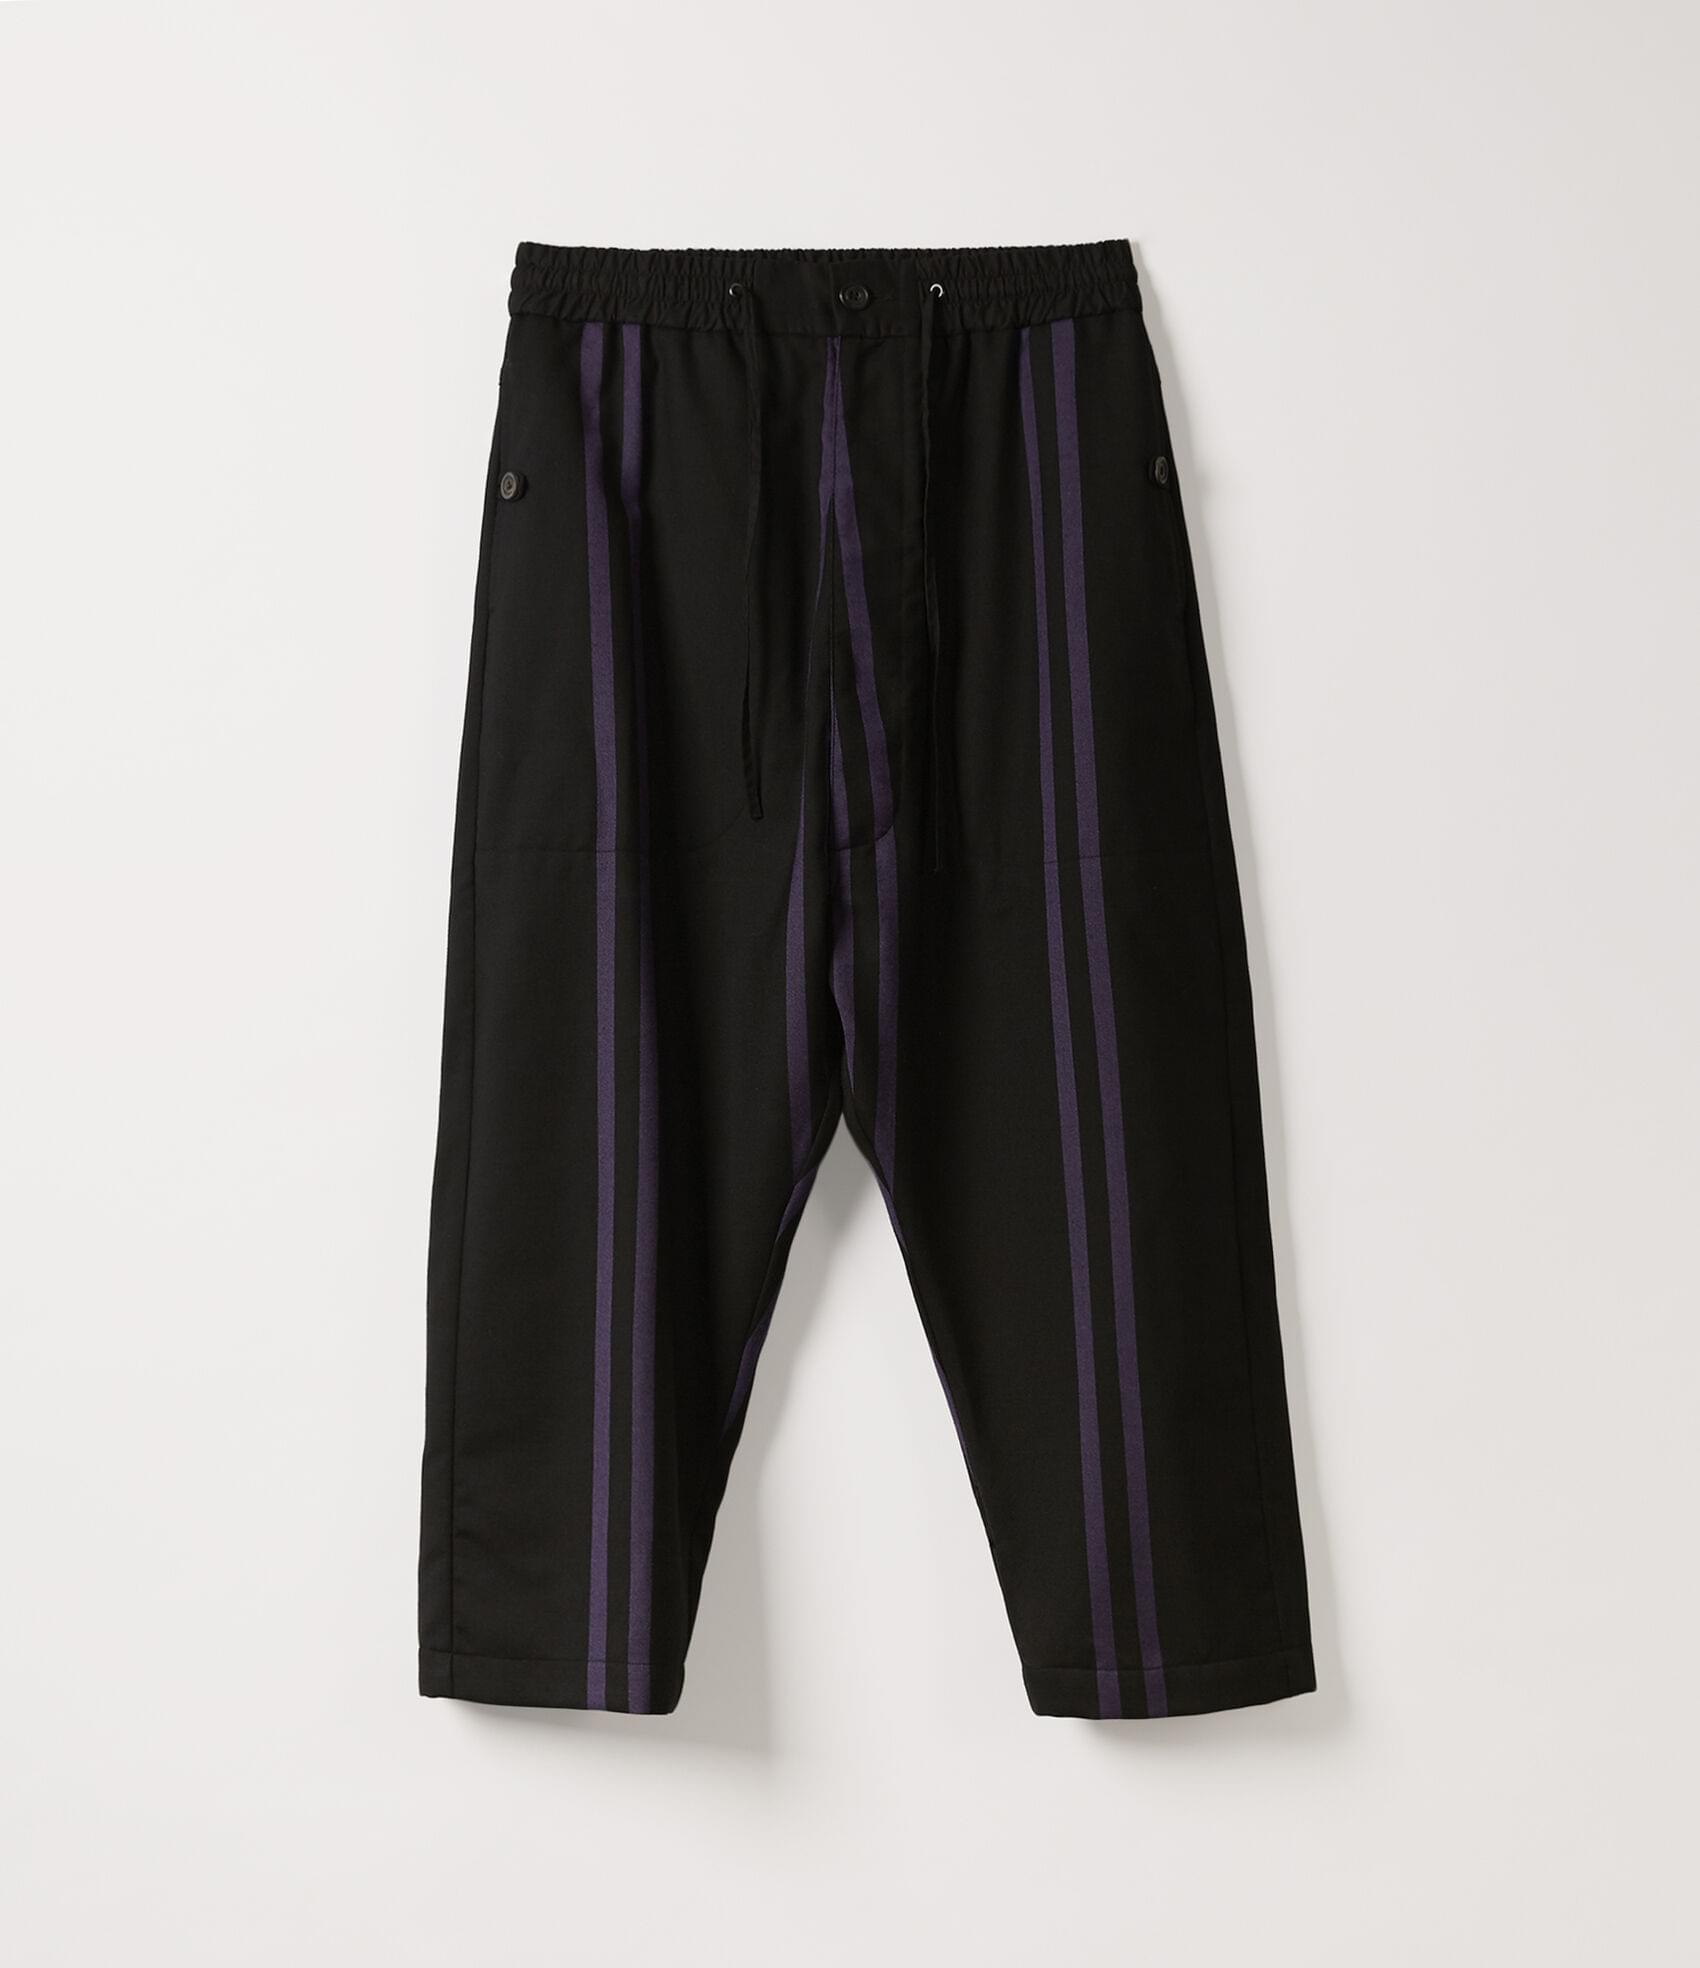 Vivienne Westwood SAMURAI TROUSERS PURPLE STRIPES